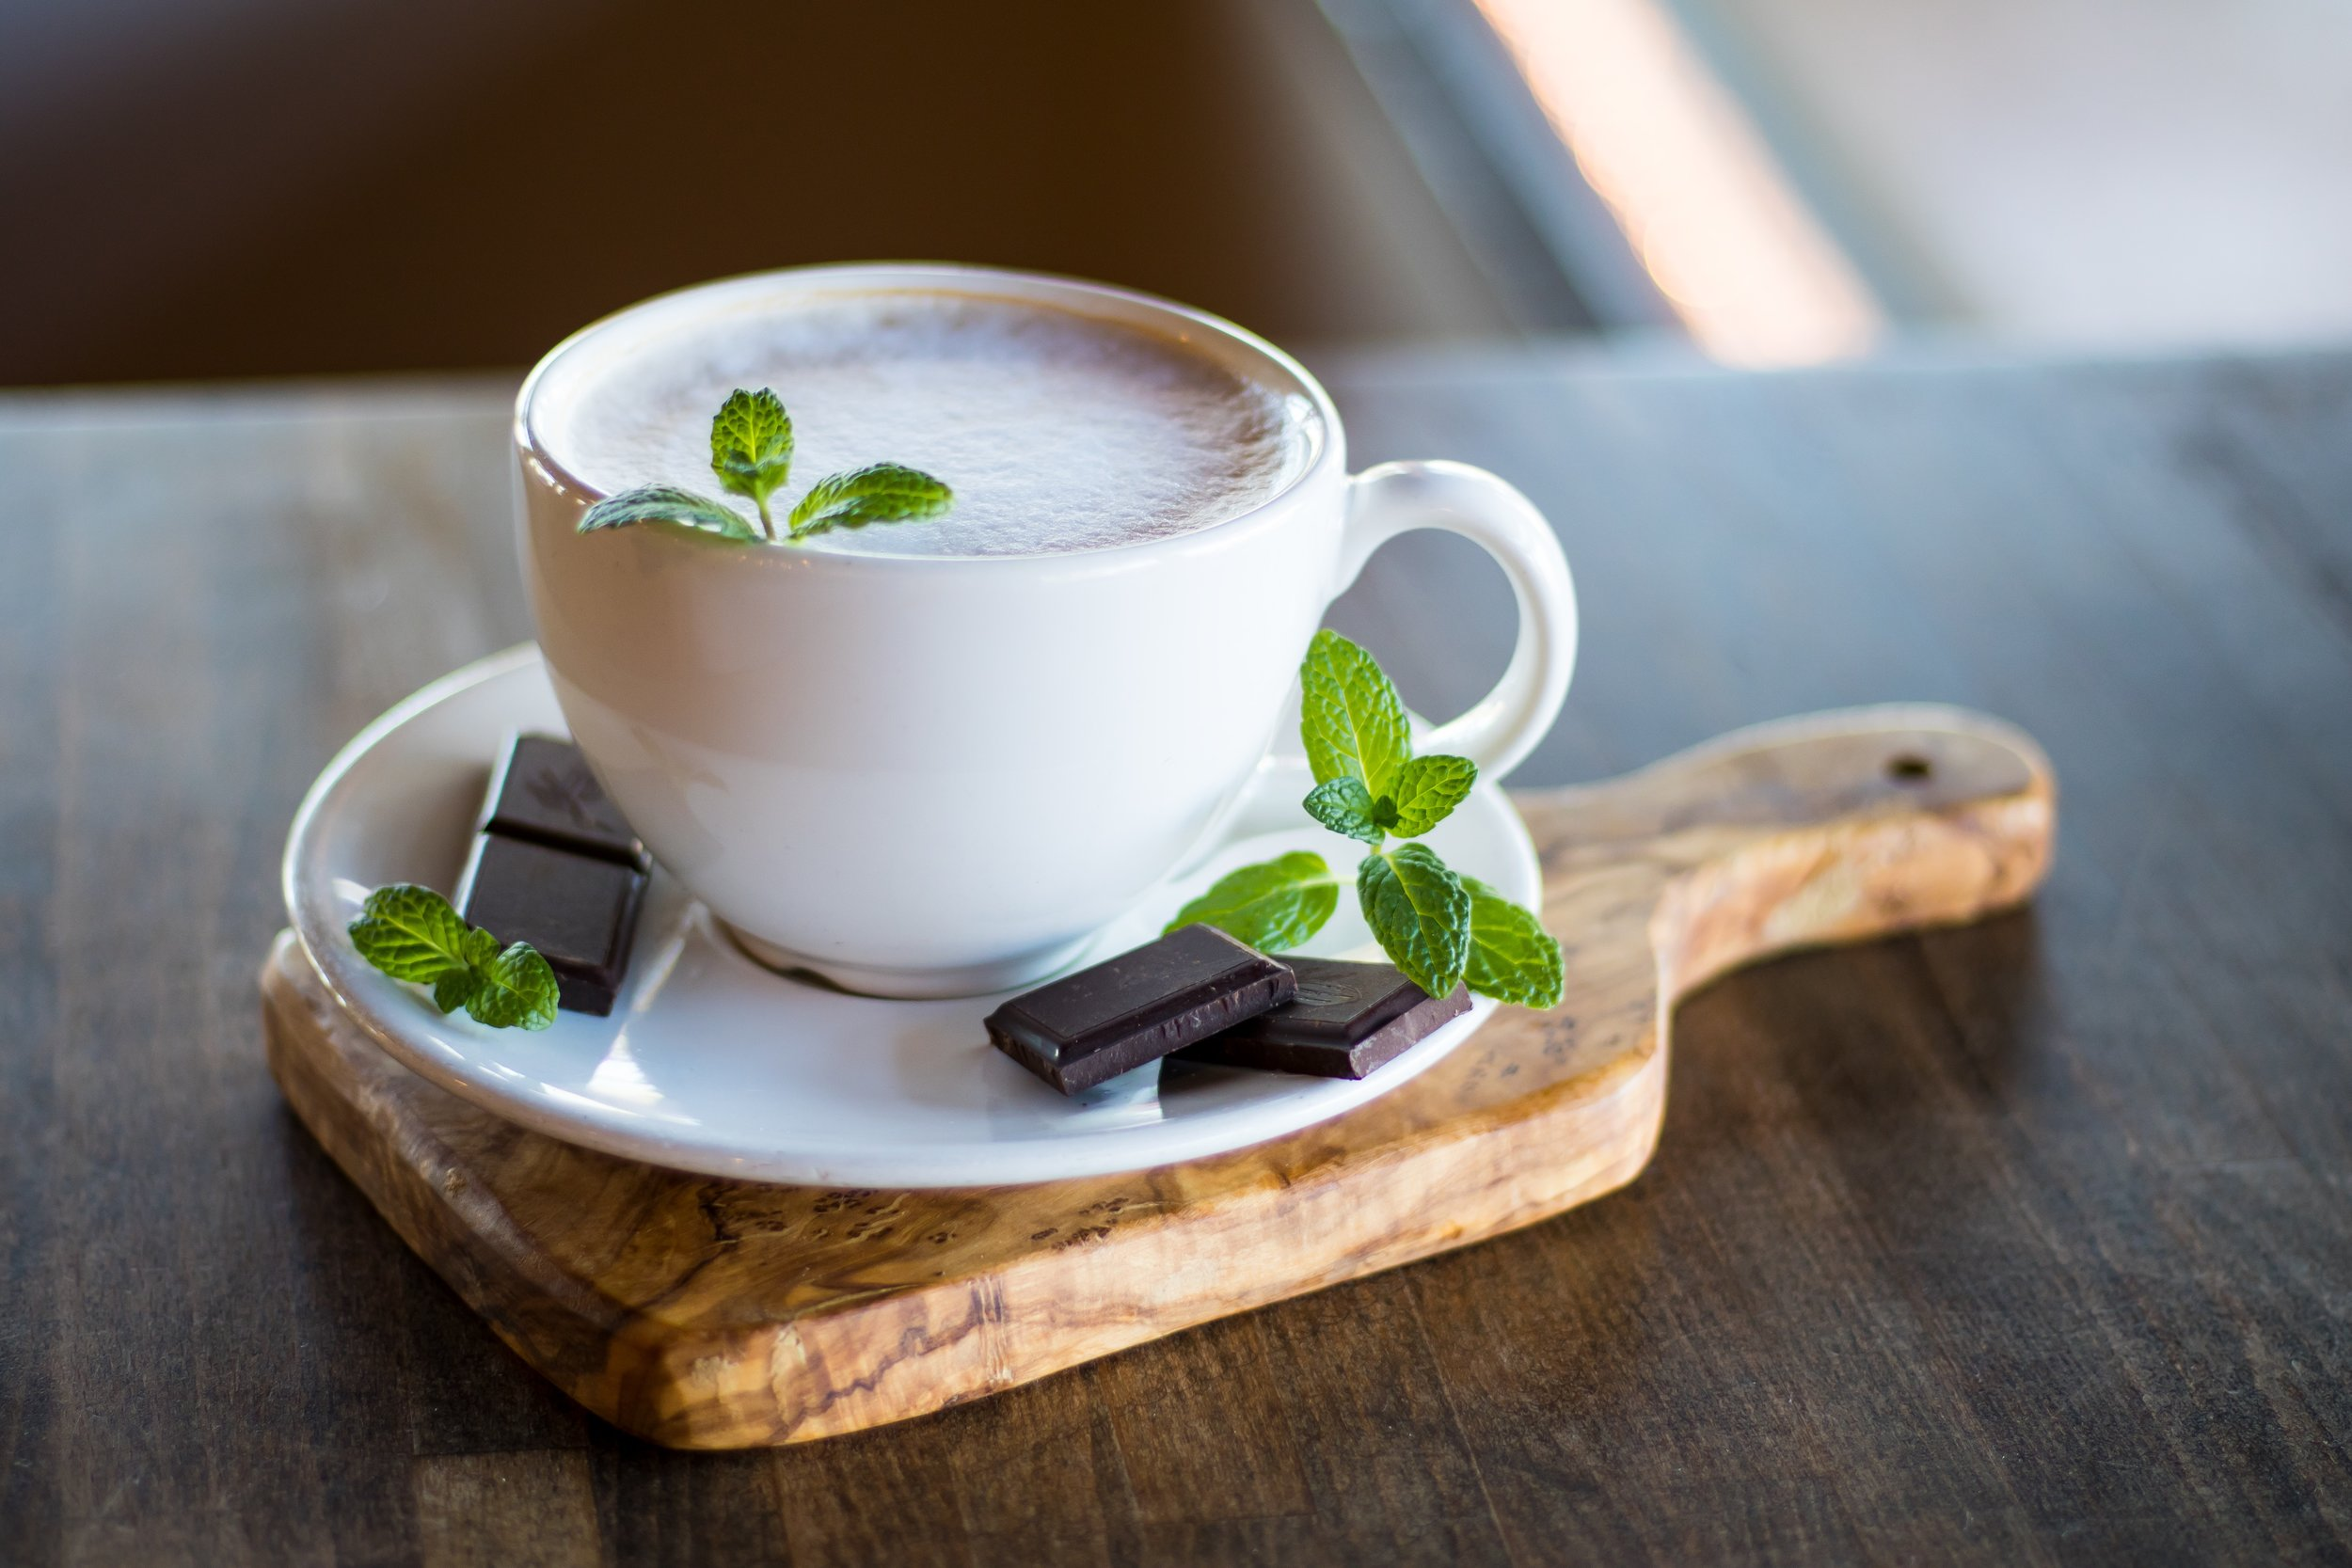 Peppermint leaves garnish a cup of hot chocolate